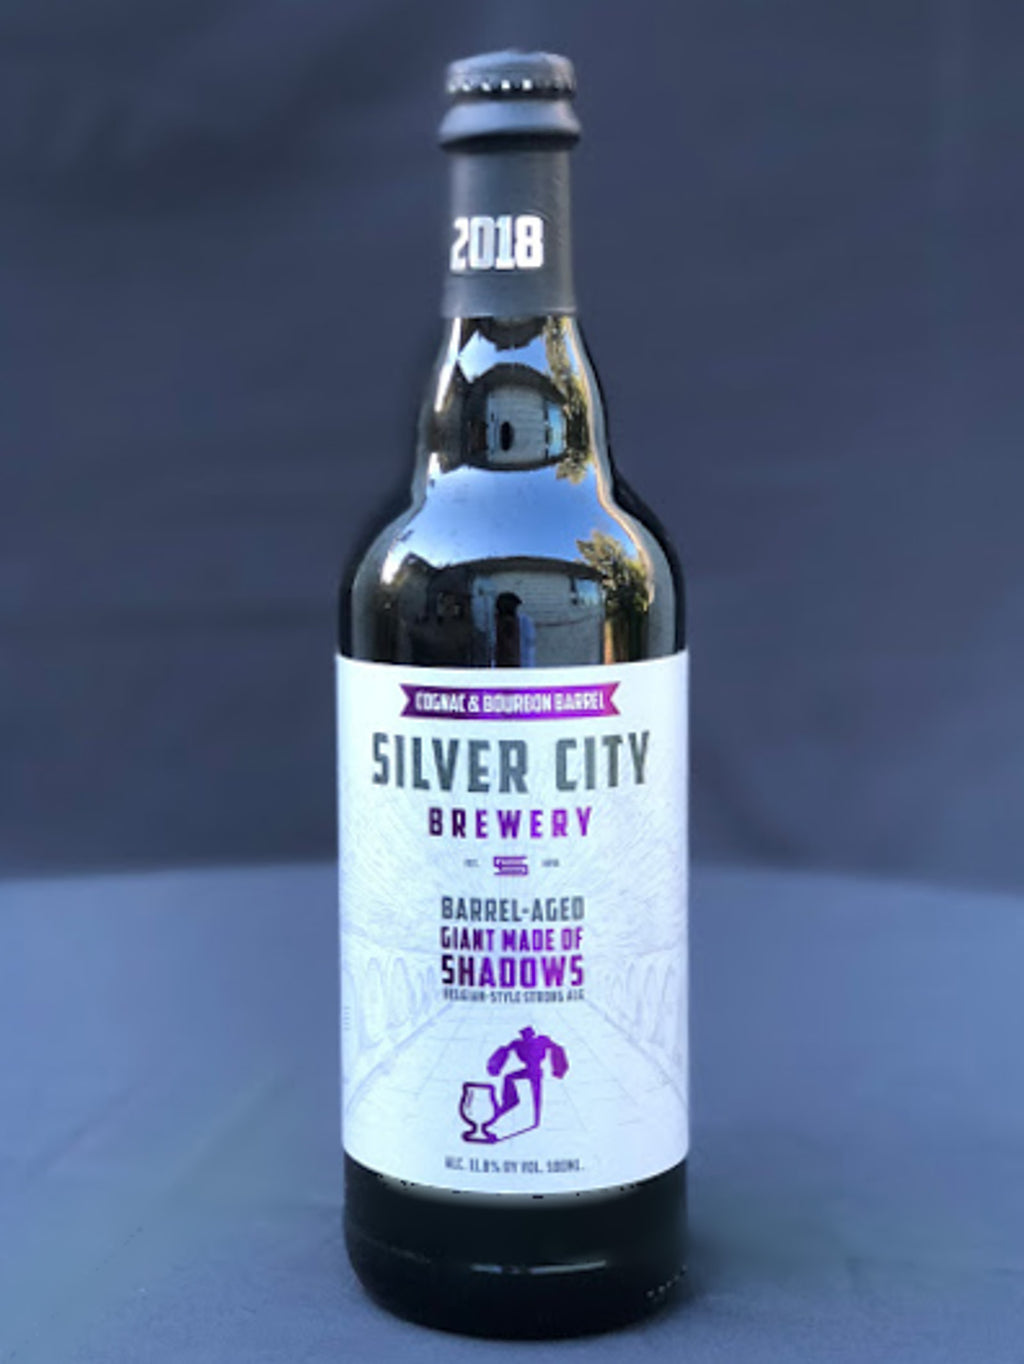 Silver City Barrel-Aged Giant Made of Shadows